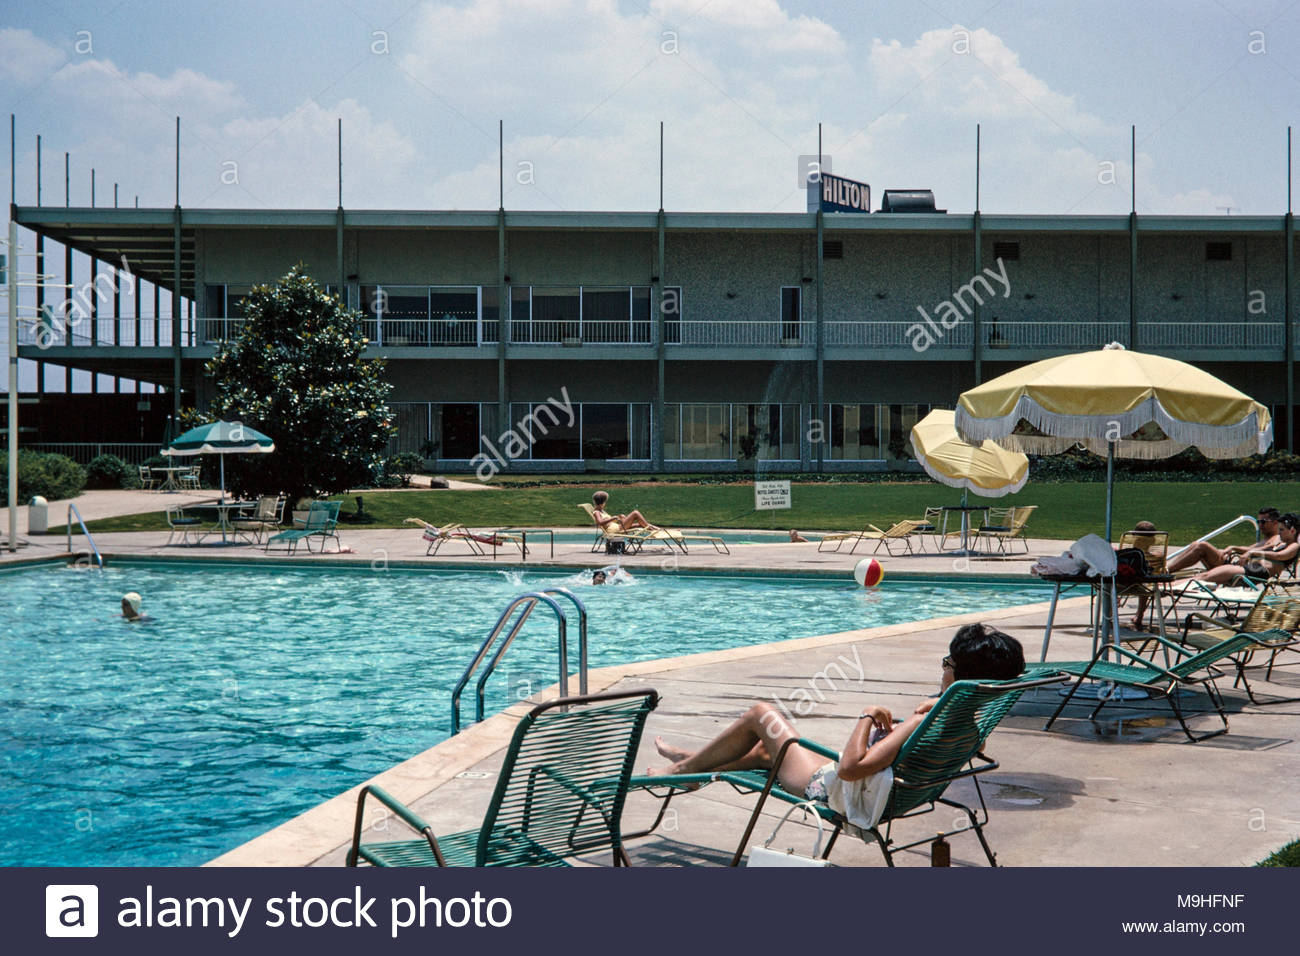 Pool Vintage Stock Photos Pool Vintage Stock Images Alamy